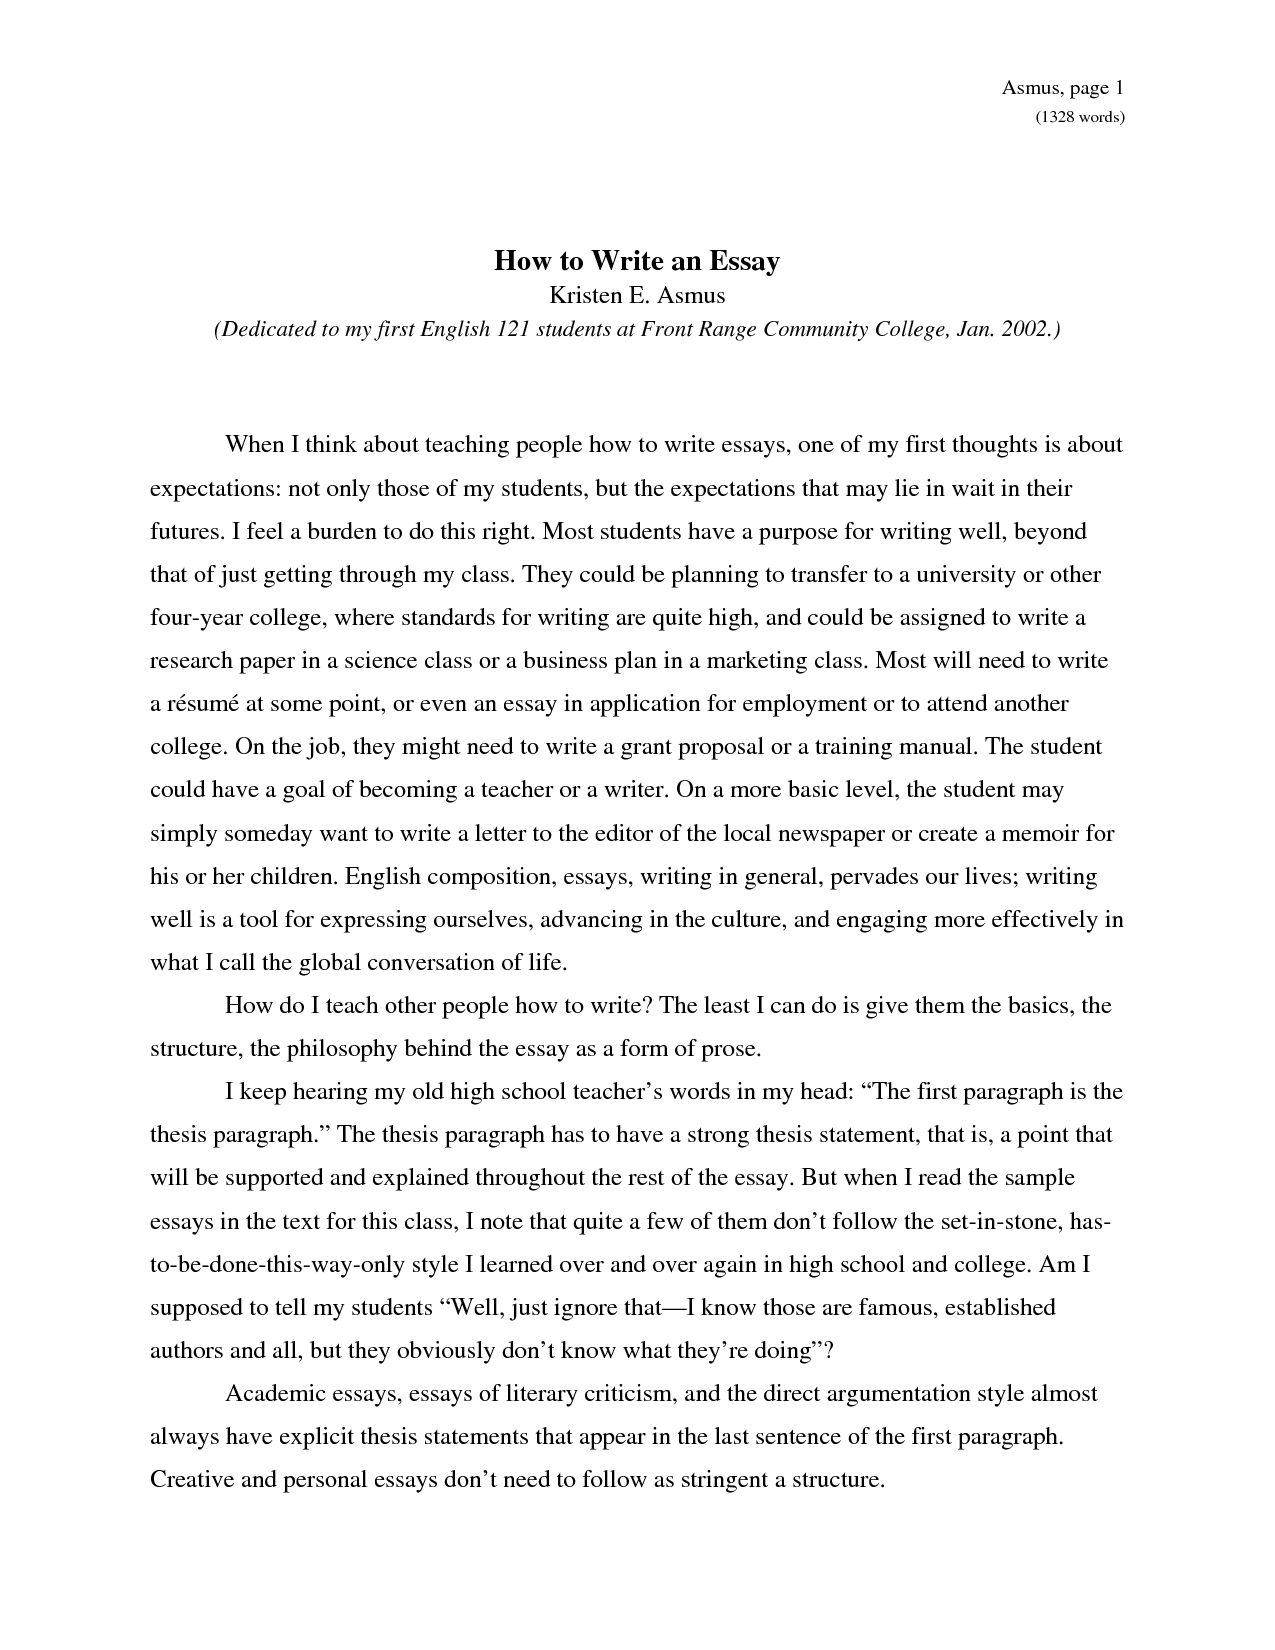 thesis statement how to write an essay